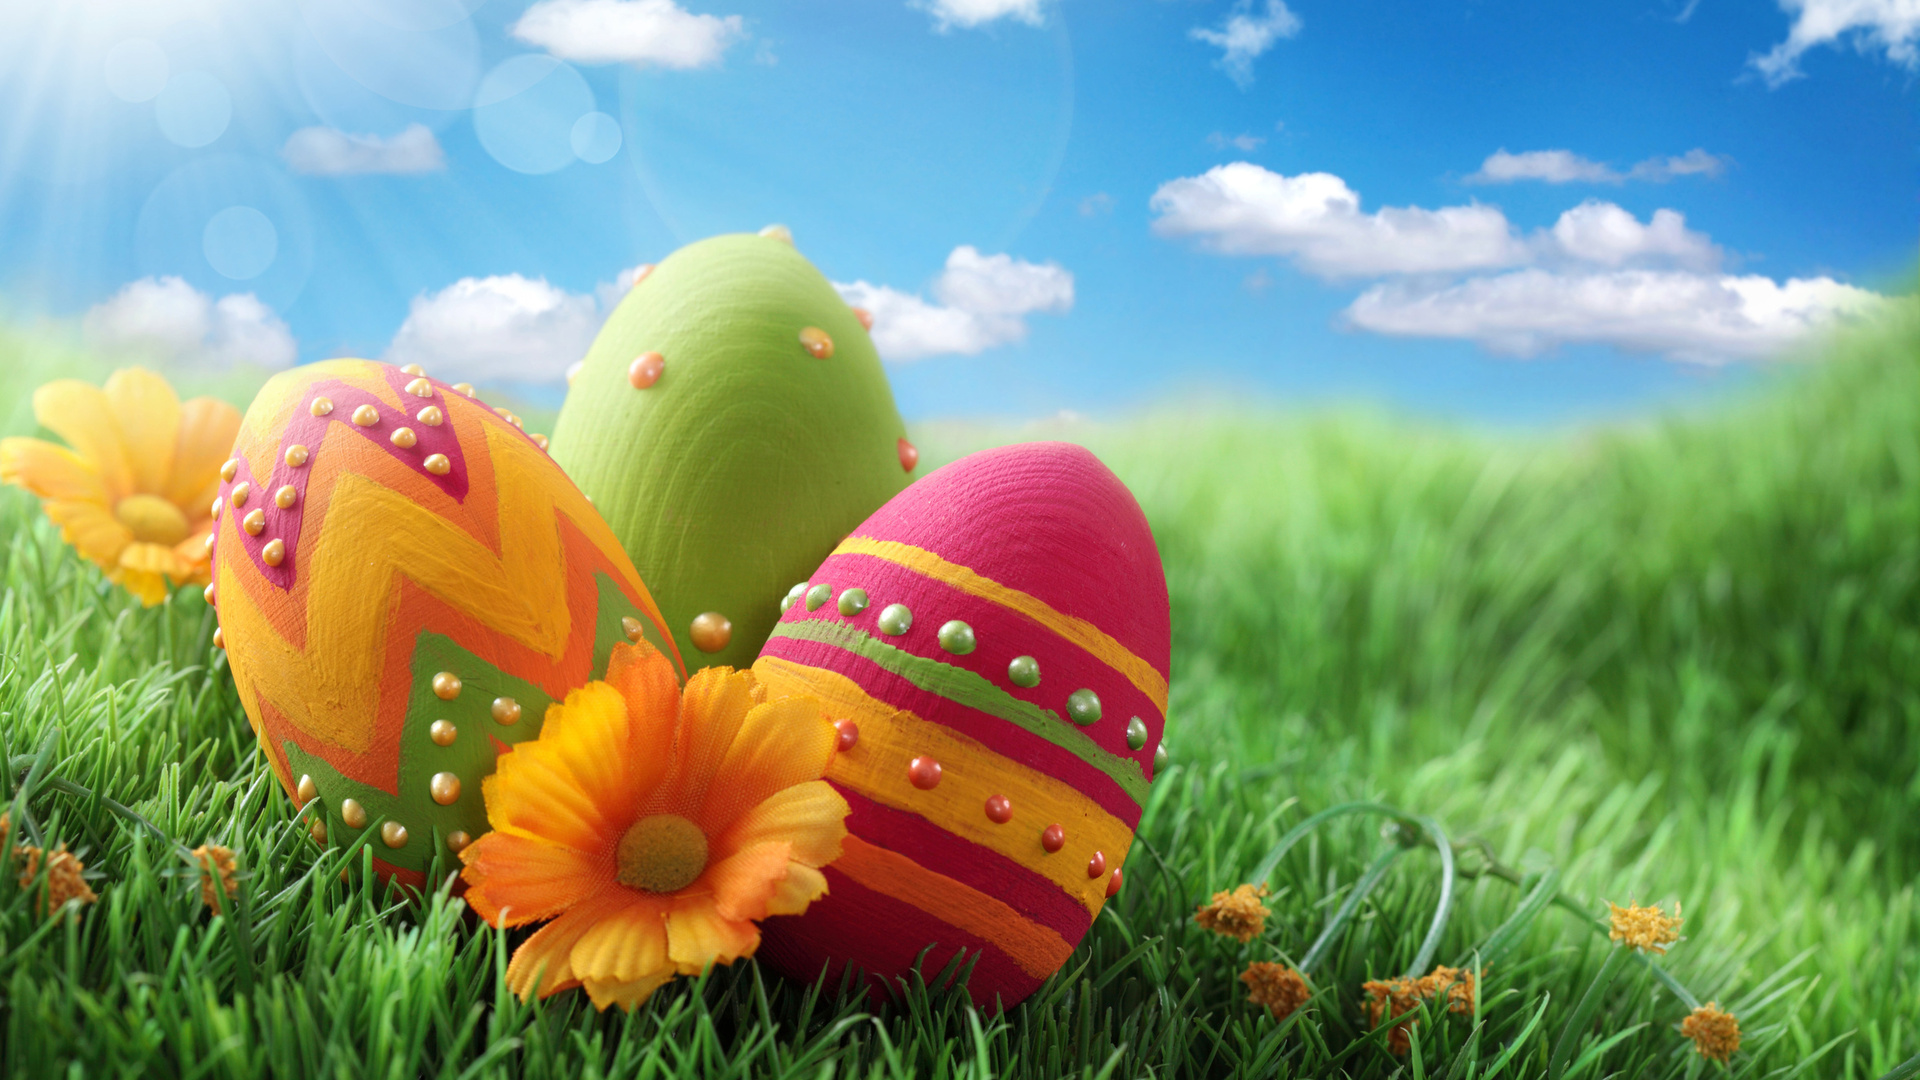 Easter wallpaper wallpaper Easter wallpaper hd wallpaper background 1920x1080